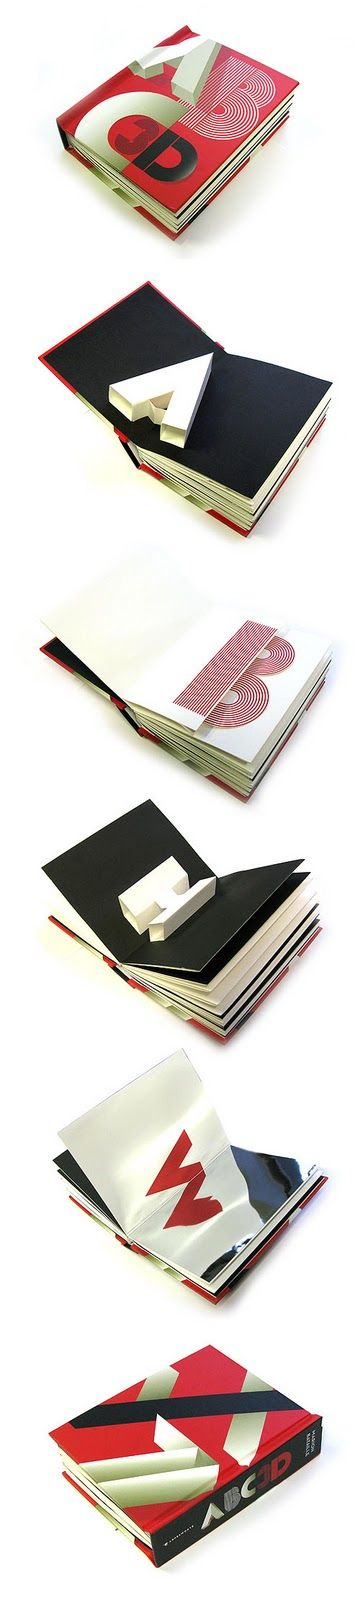 A pop up book of type showing the transformation from 2D to 3D. A great representation of the perception of type.